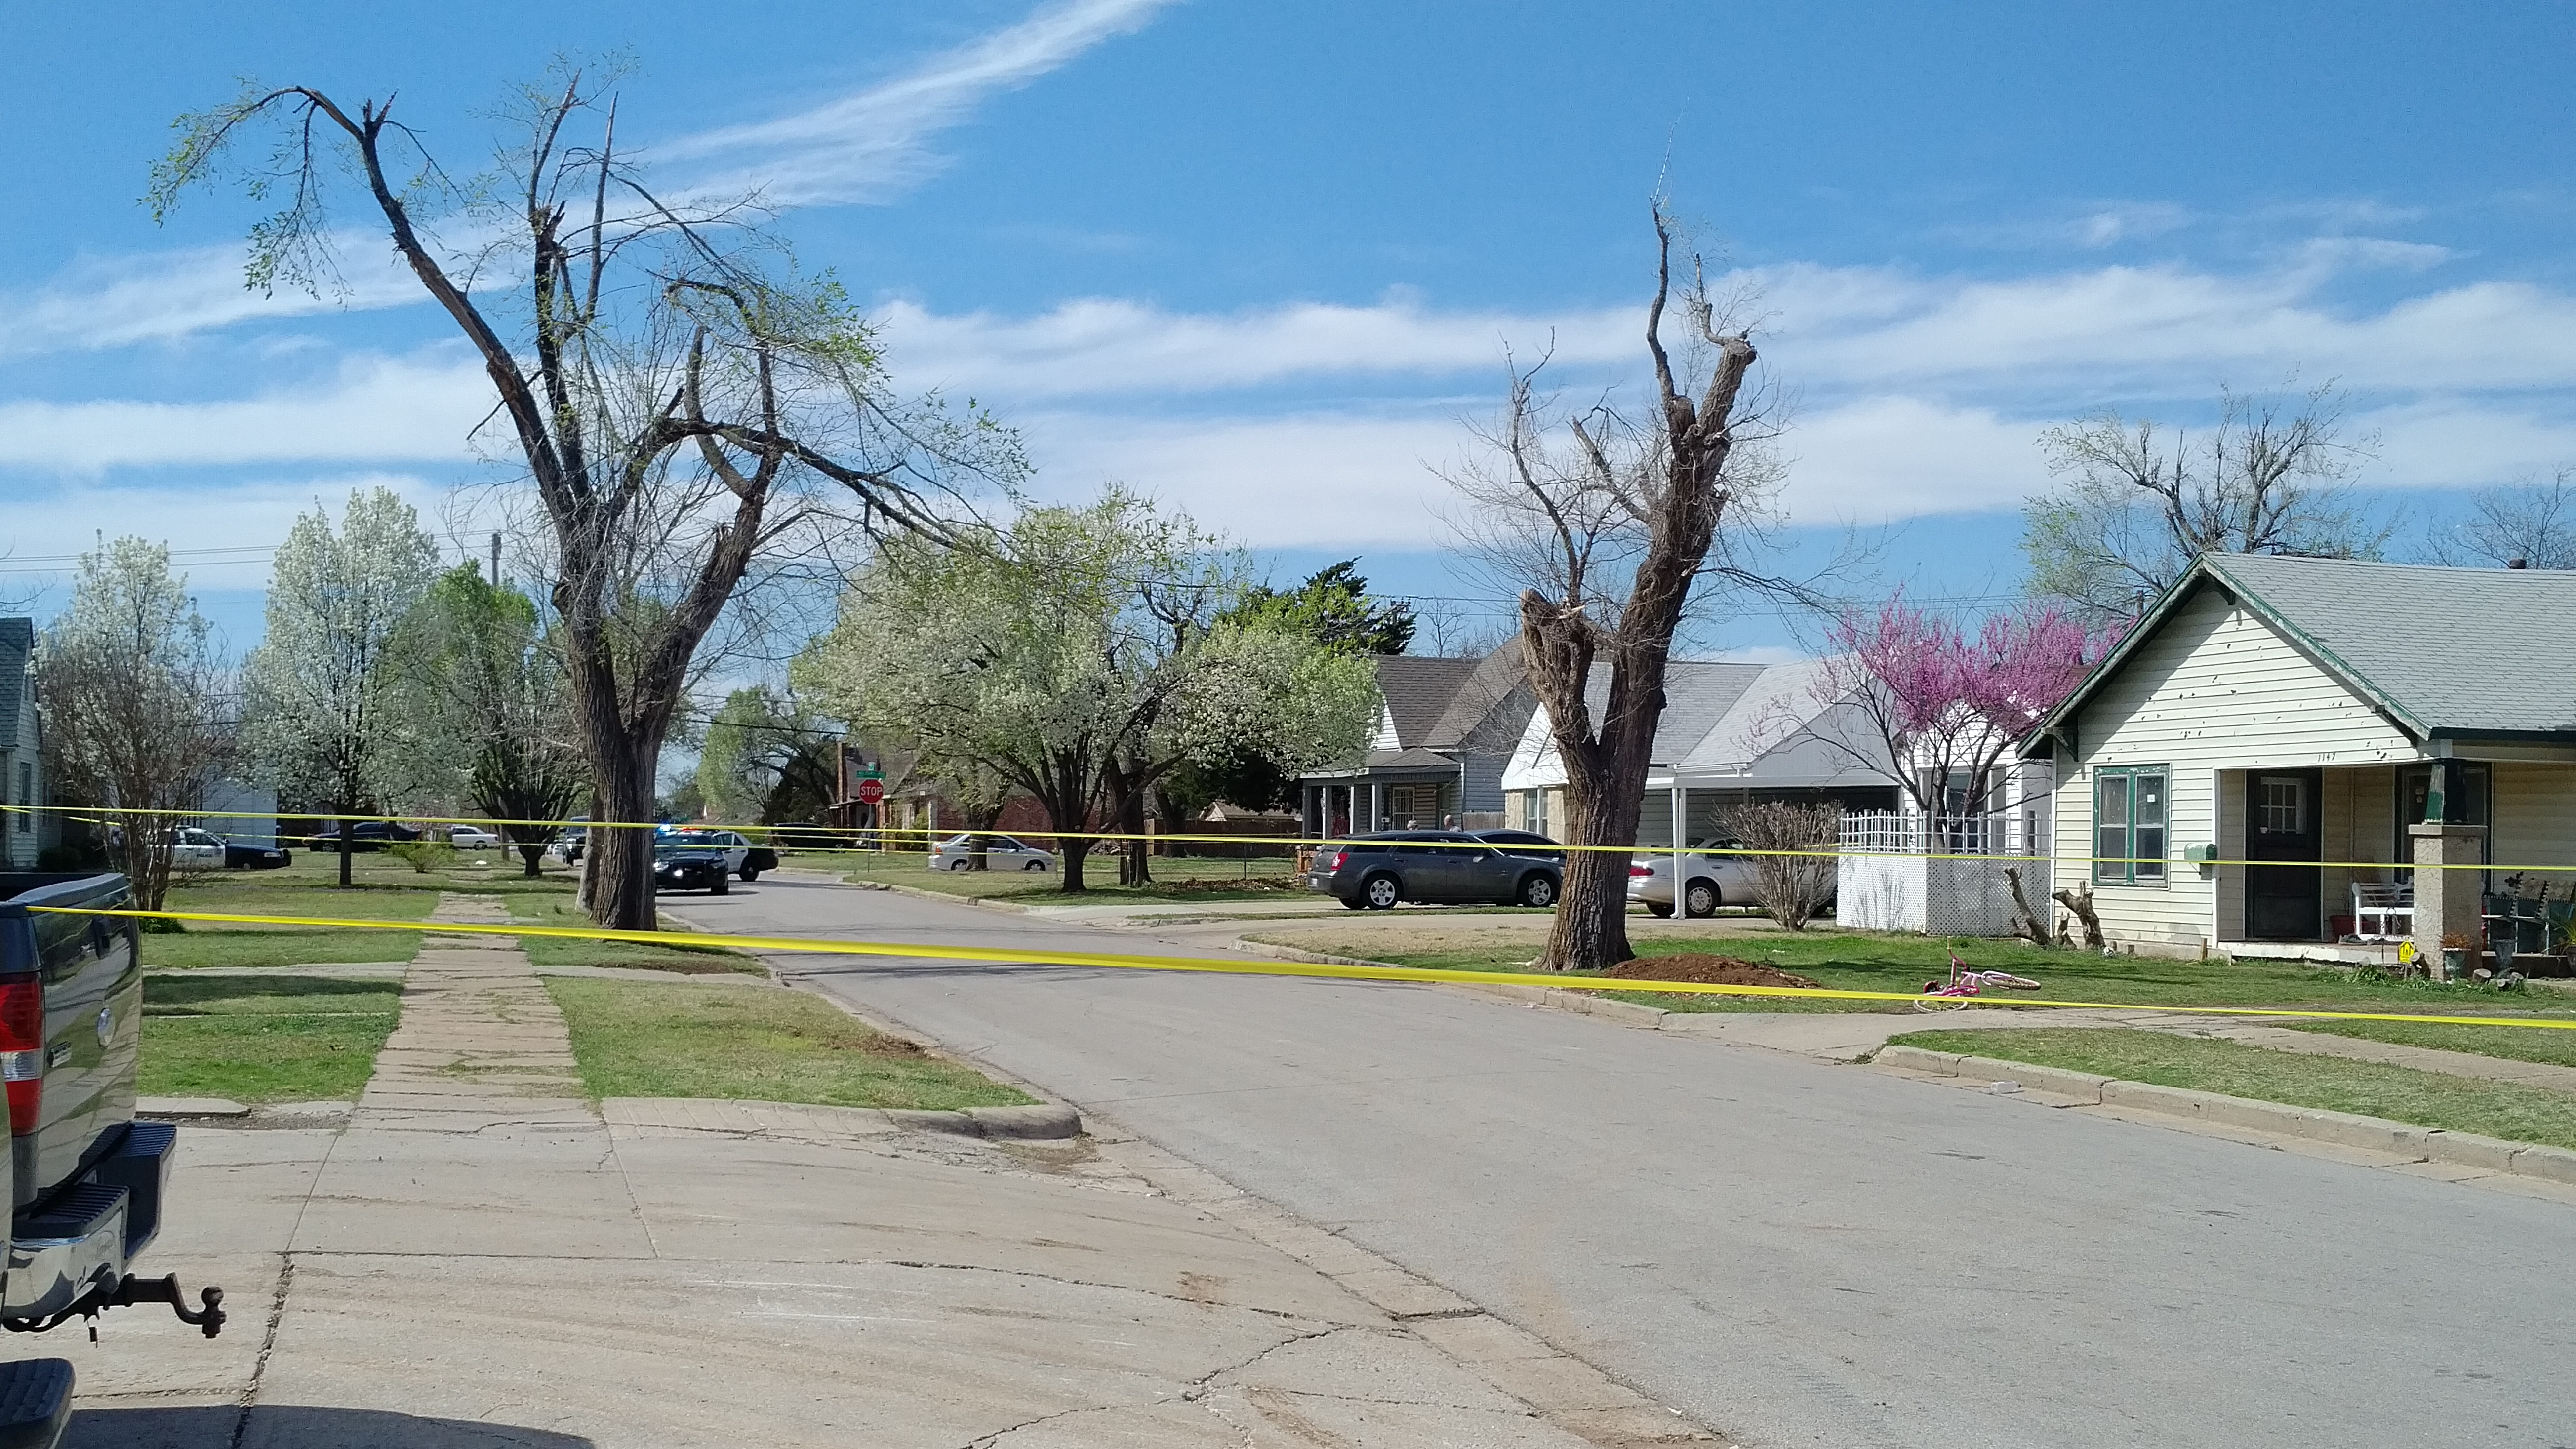 Scene of shooting in NW Oklahoma City